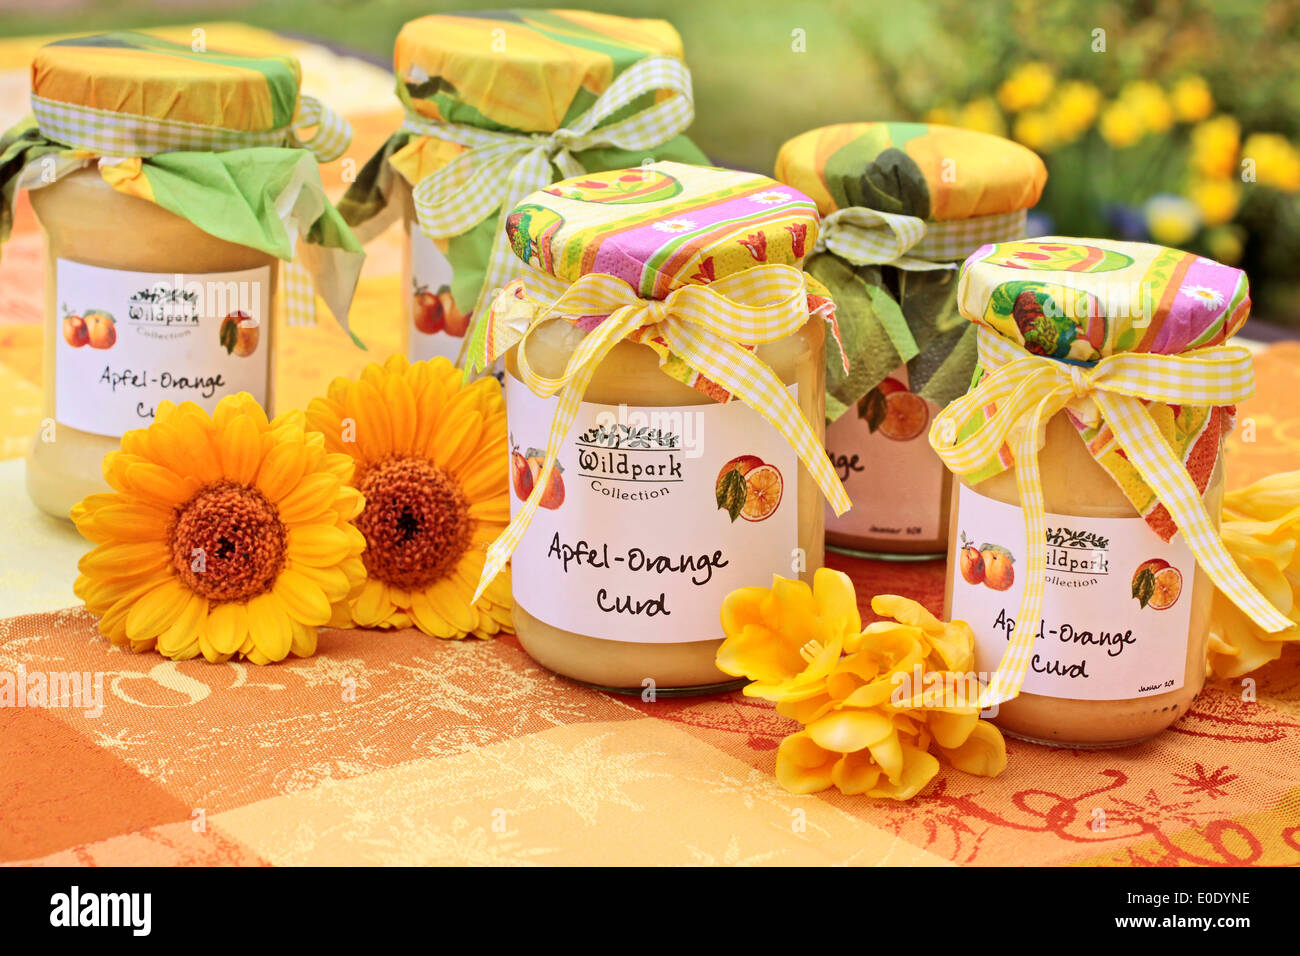 Apple-orange curd on a colorful tablecloth with flowers - Stock Image